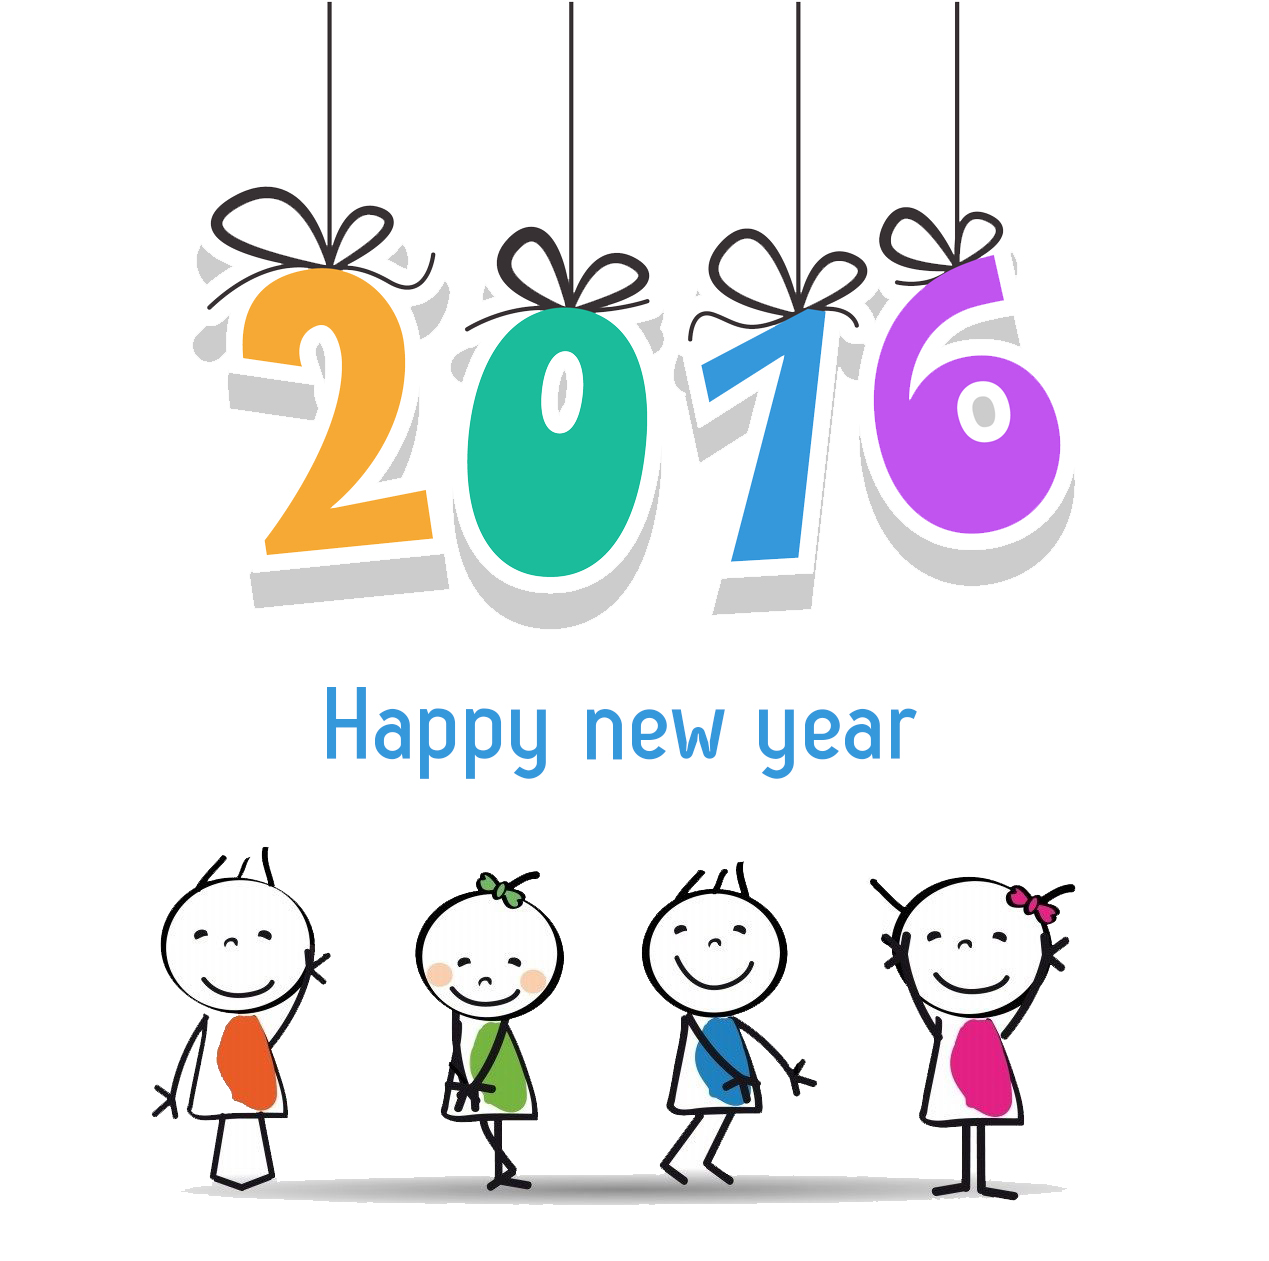 Free Clipart For 2016 Happy New Year & Free Clip Art Images #11216.